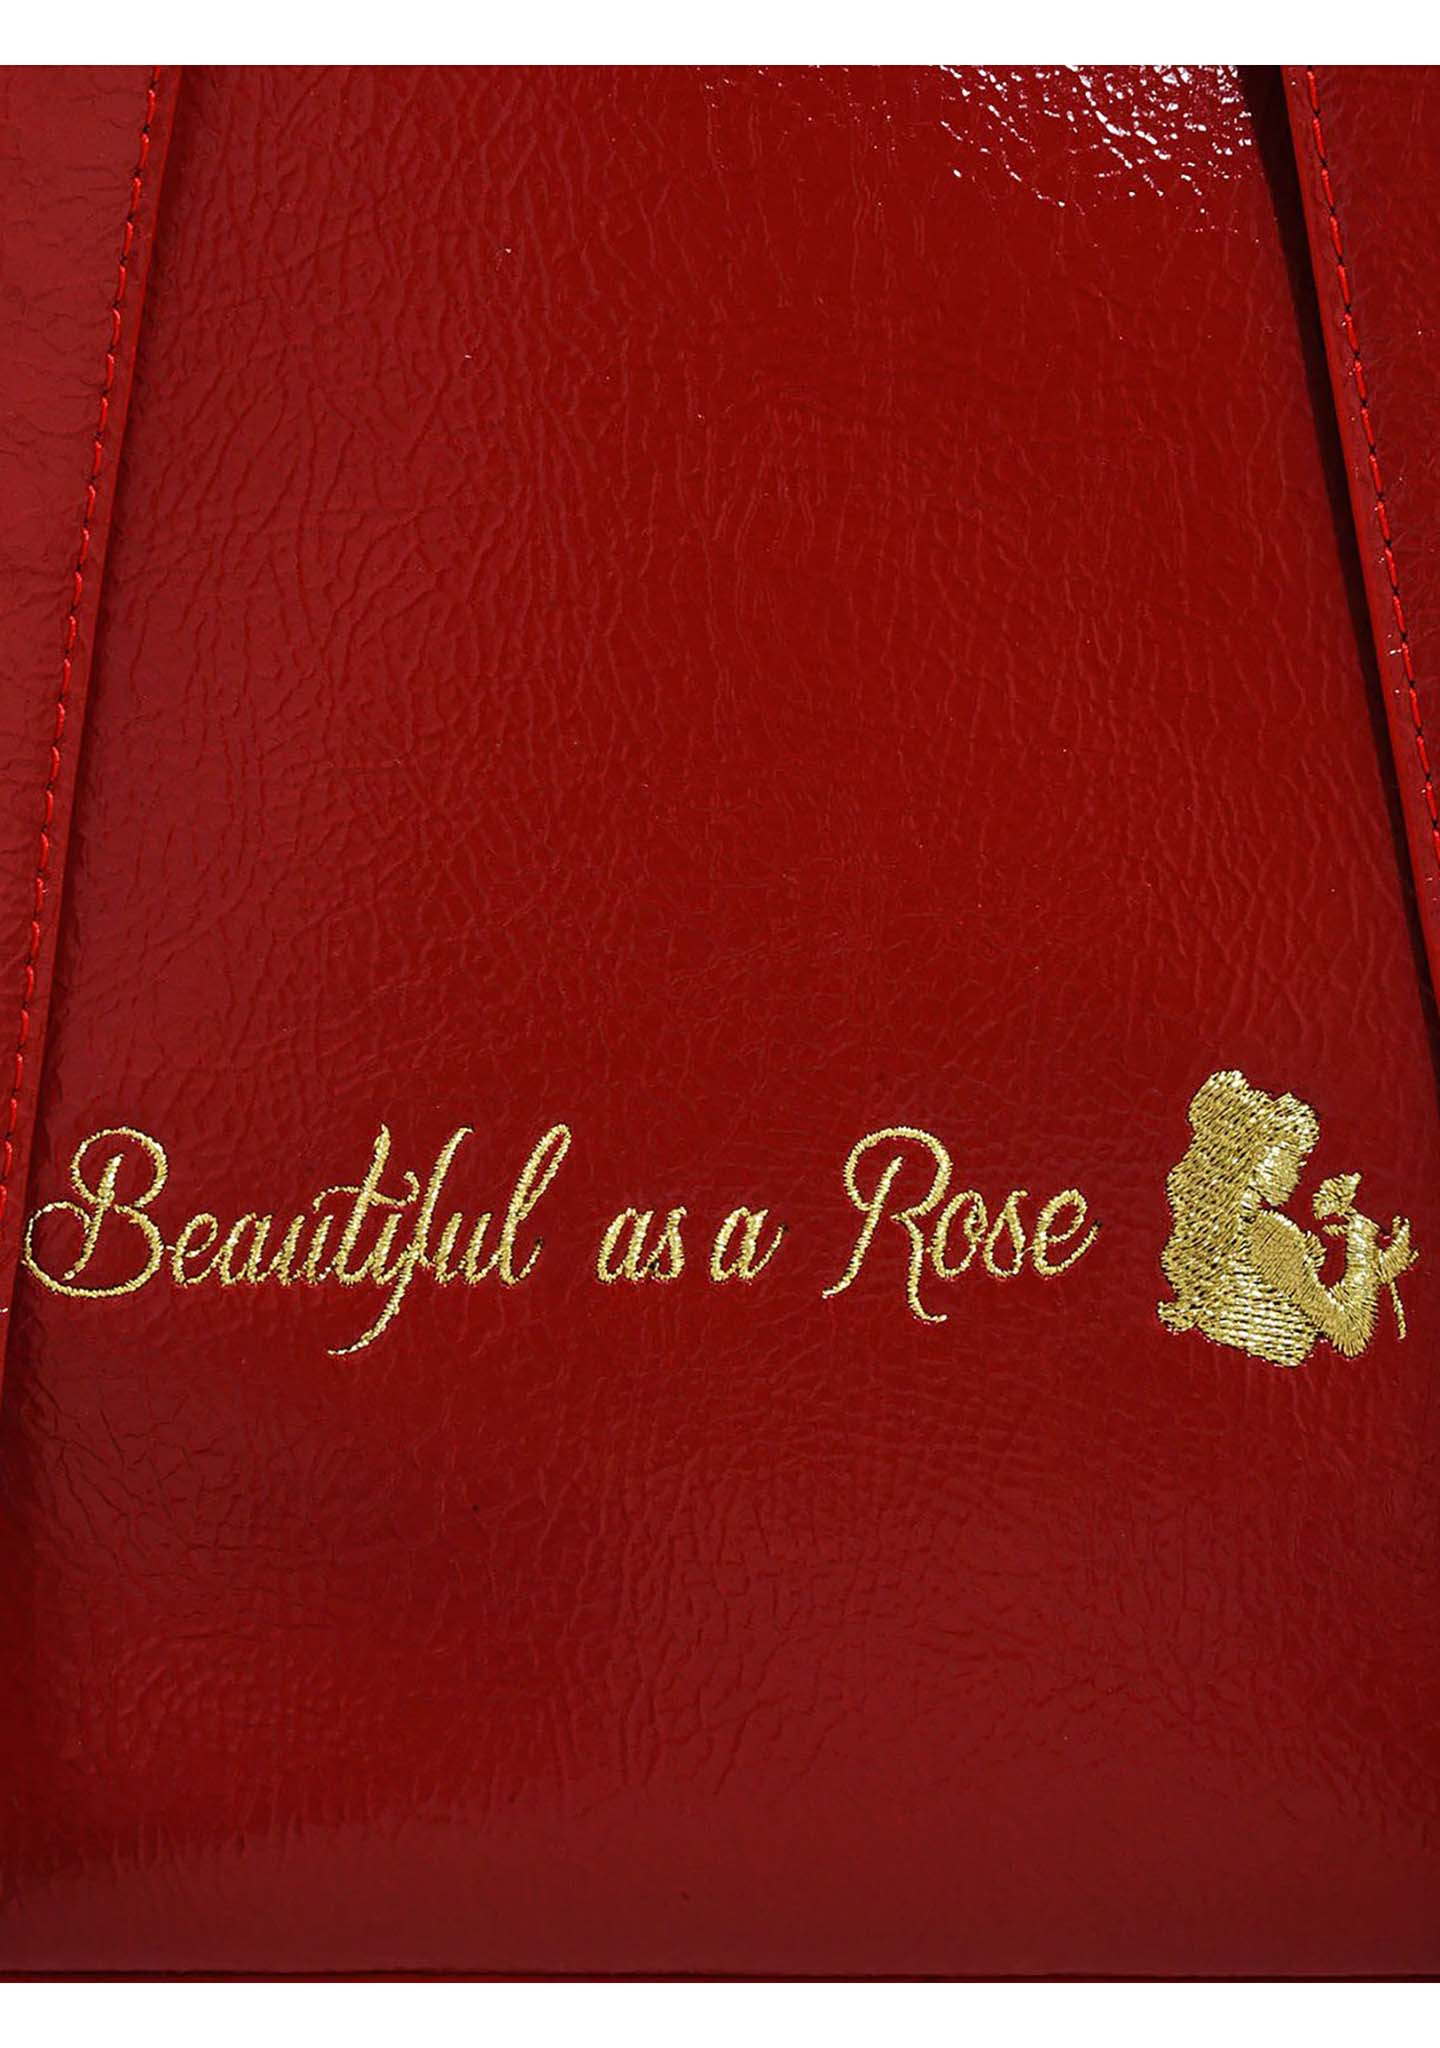 X Dinsey Beauty and the Beast Rose Backpack